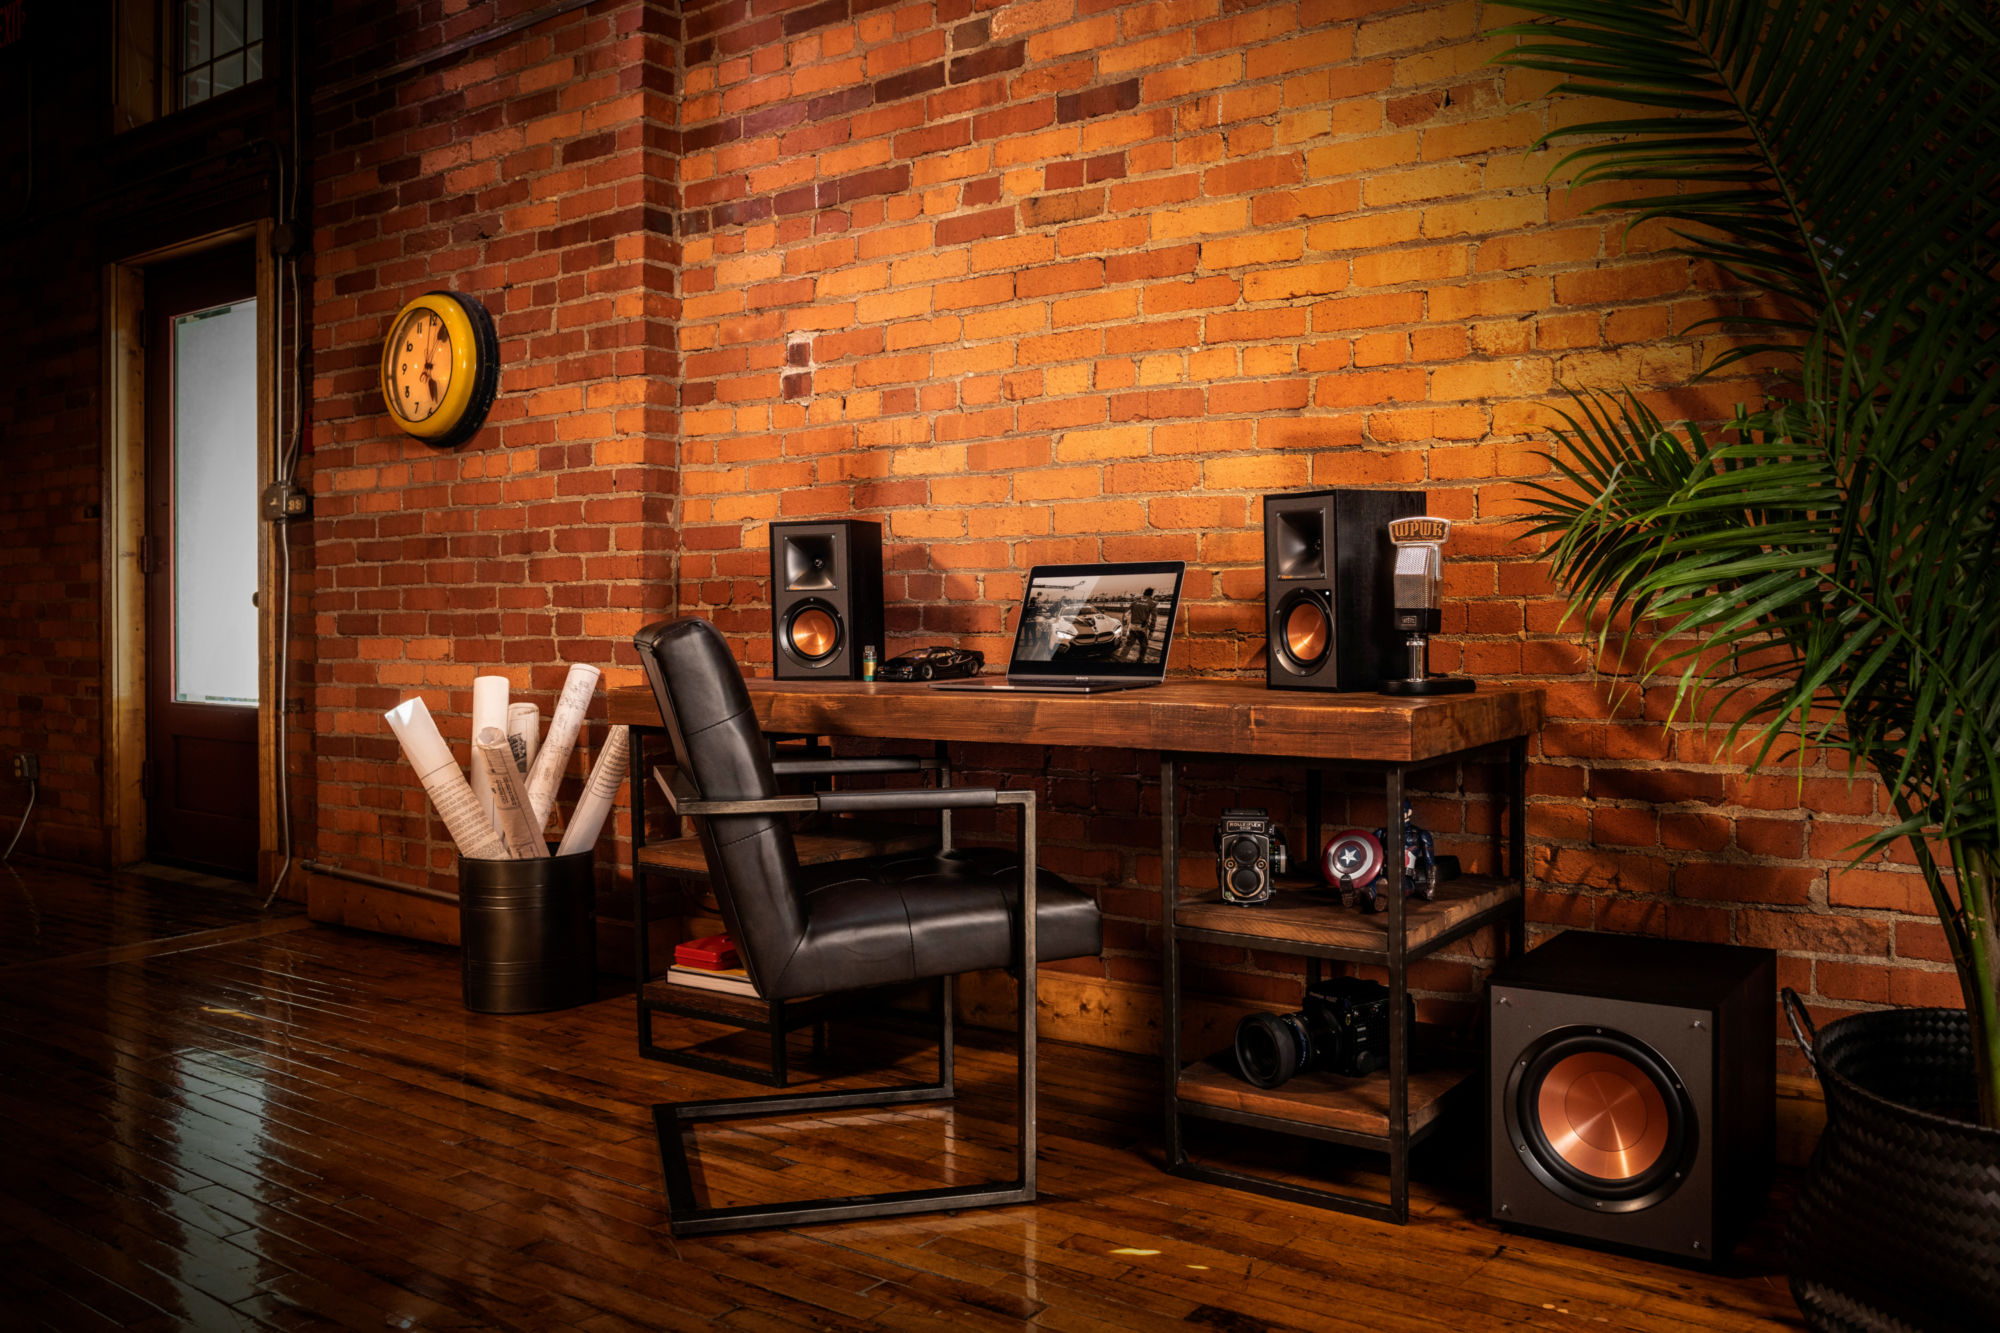 Klipsch Reference Powered Speakers on a desk with a laptop